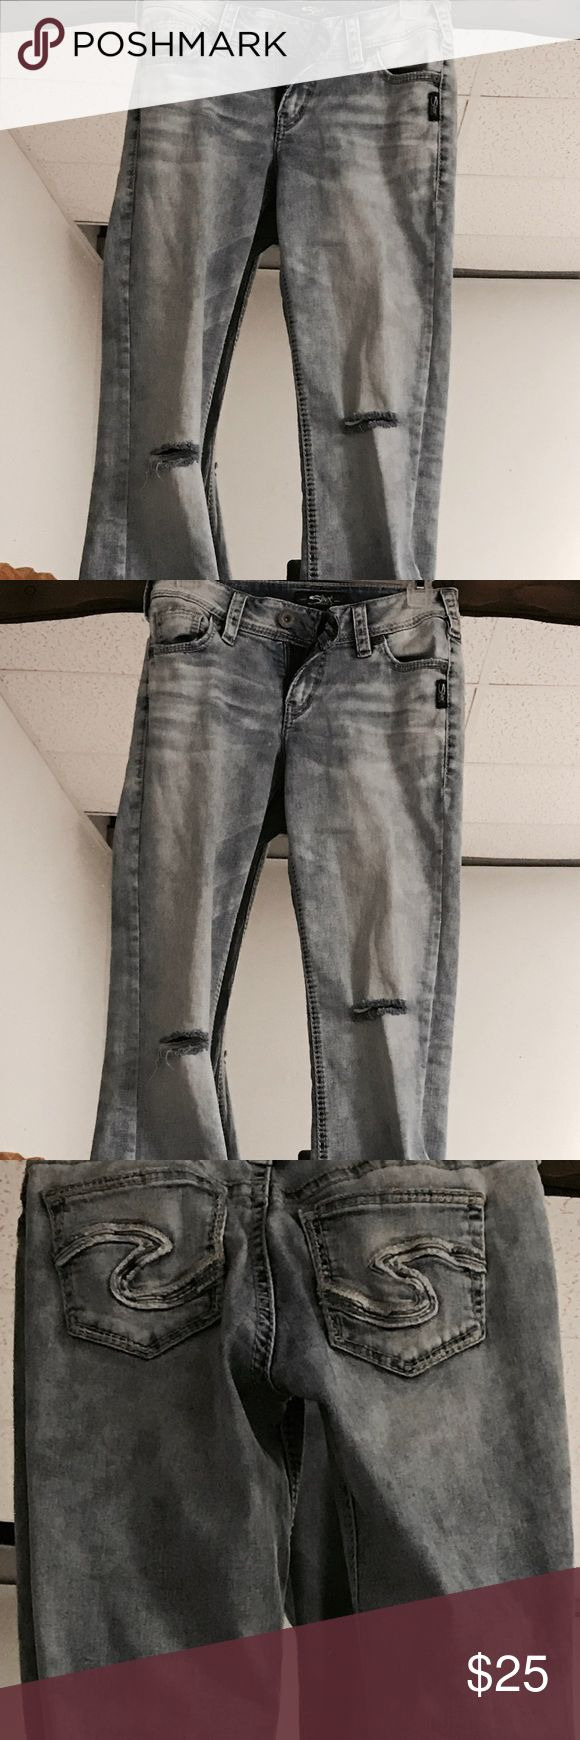 Hip Huggers Blue jeans as 7 xtra tall Silver Surf Denimnationlight blue jeans with designer pockets Size 7 xtra tall worn out look rips in both knees Jeans Flare & Wide Leg